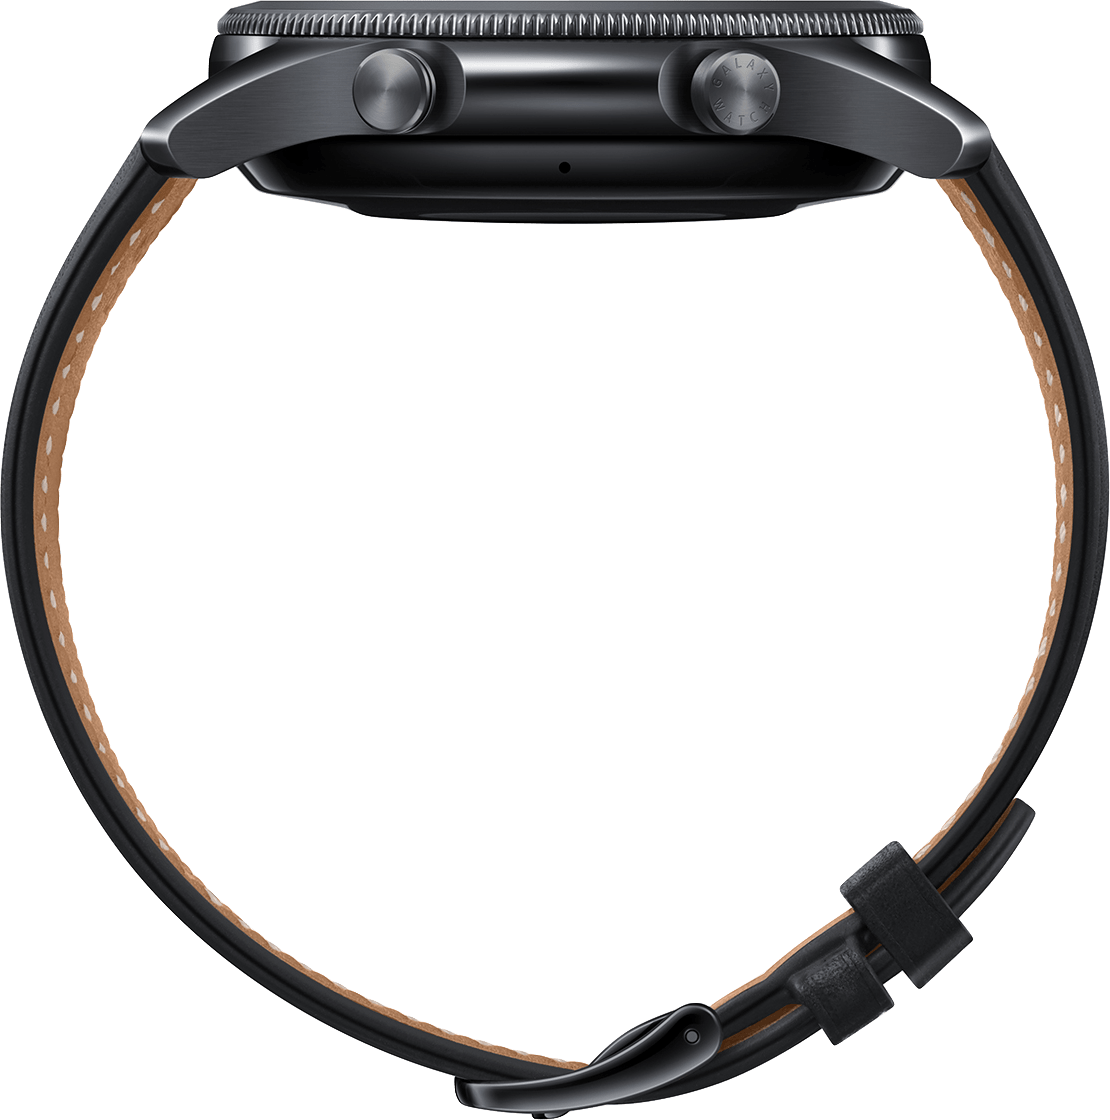 Mystic Black Samsung Galaxy Watch 3 (LTE), 45mm Stainless steel case, Real leather band.3